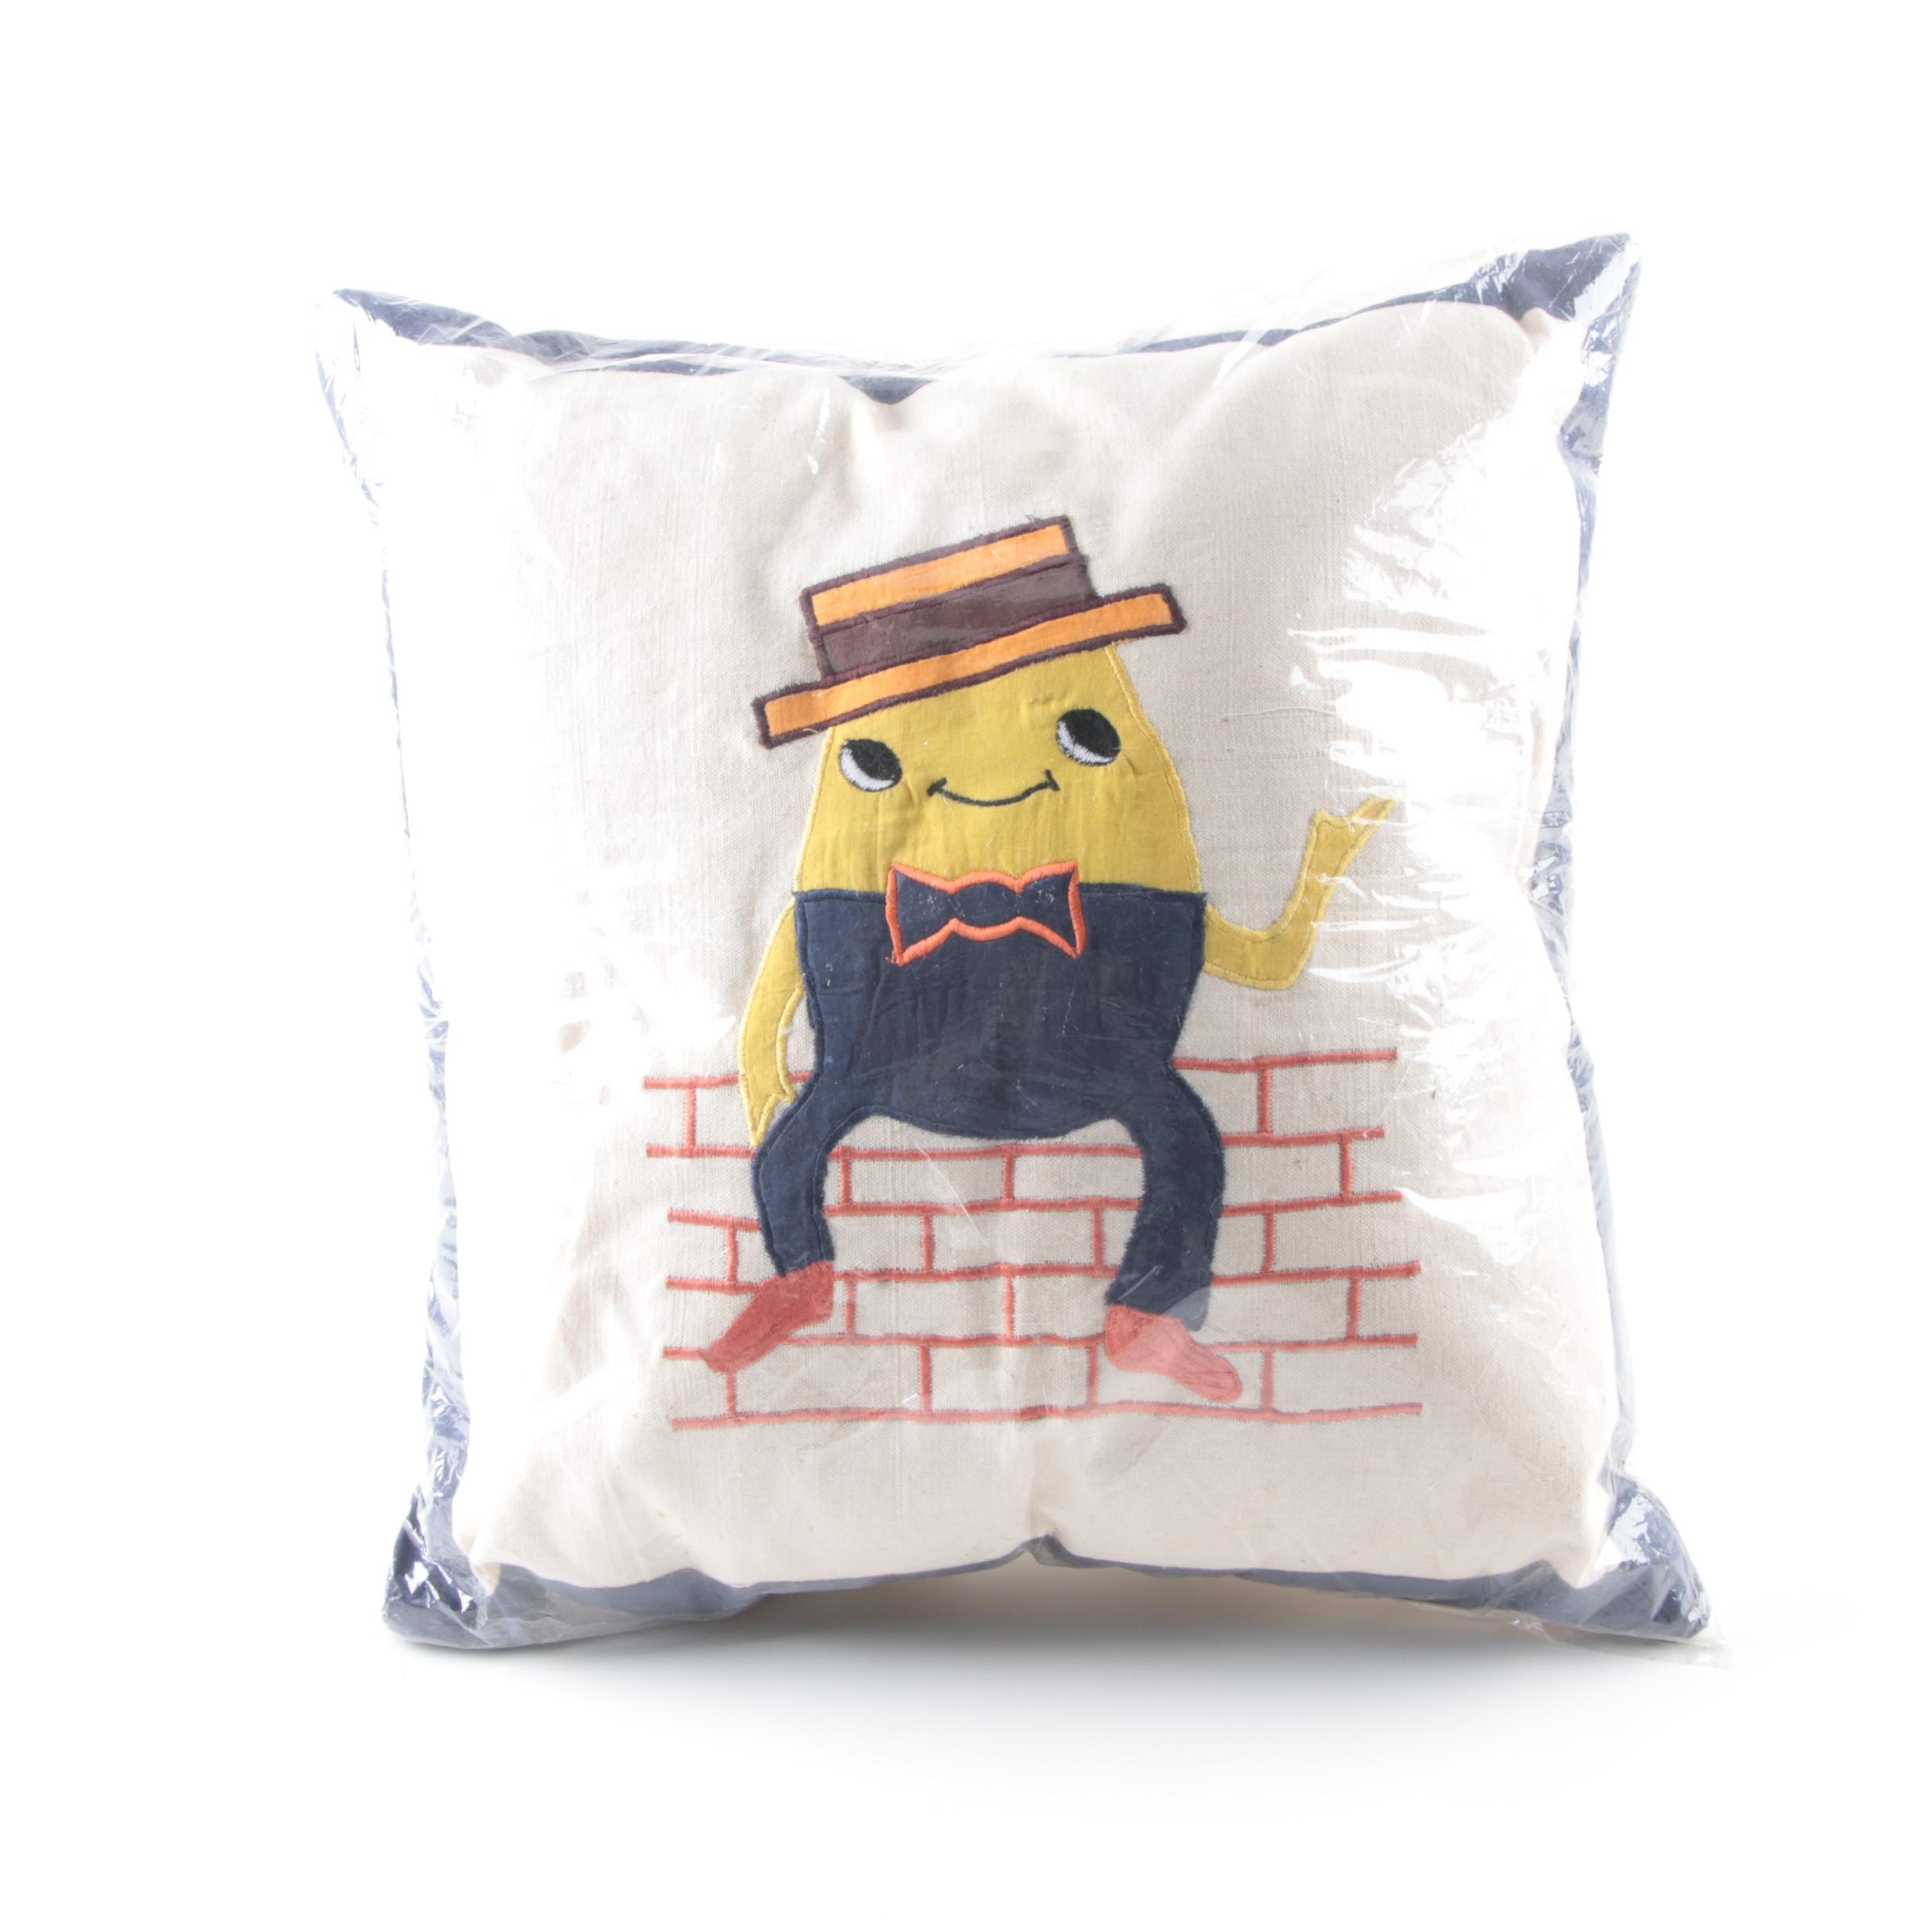 Handmade Humpty Dumpty Applique Pillow